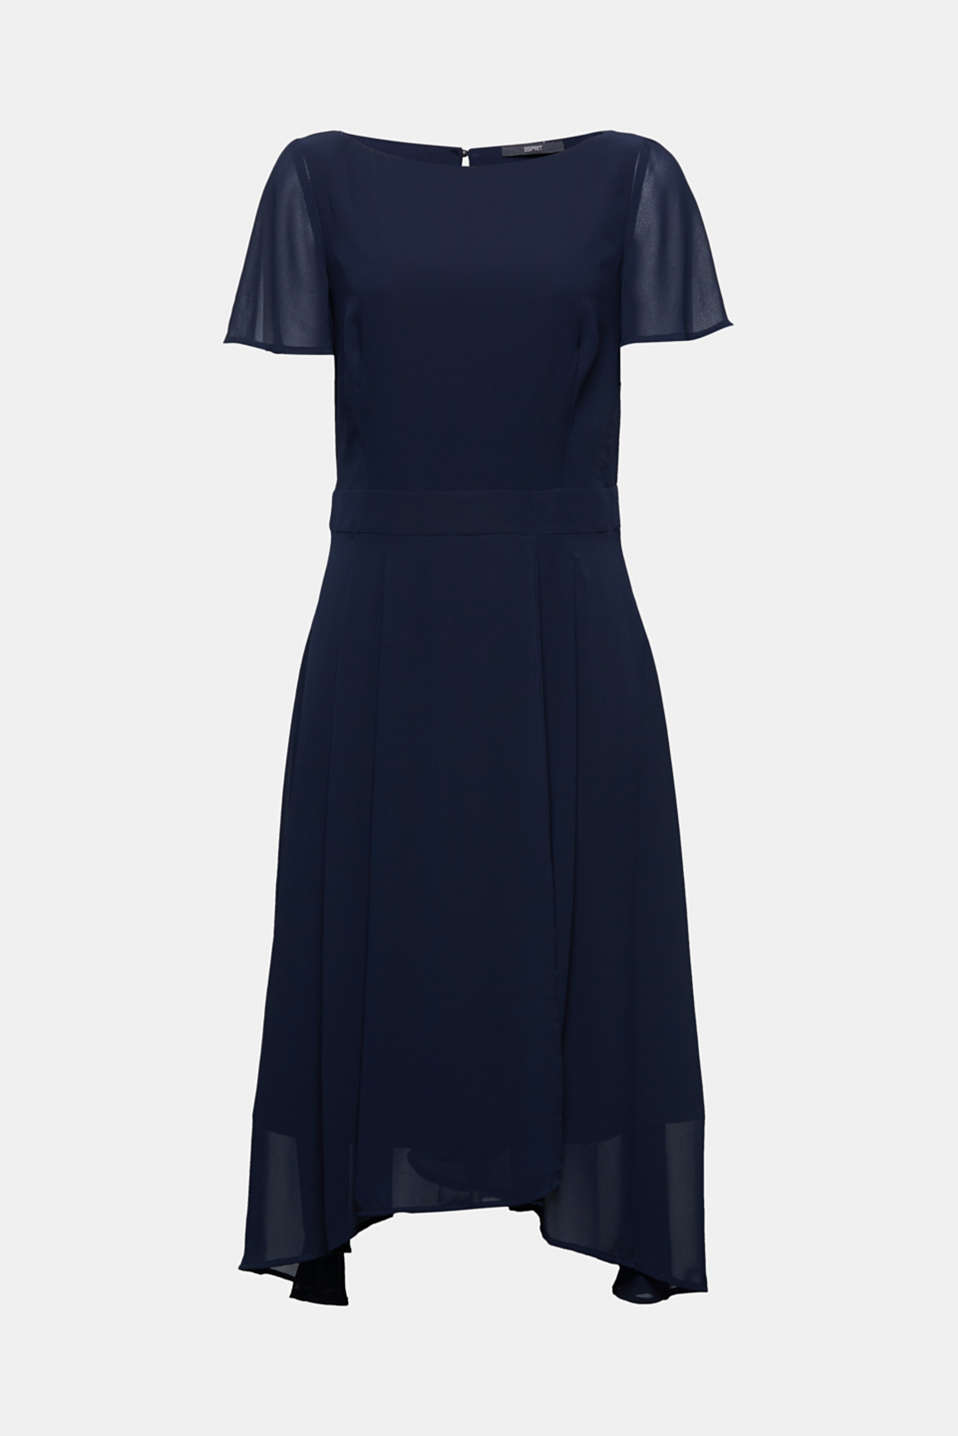 Midi dress in crêpe chiffon, NAVY, detail image number 5